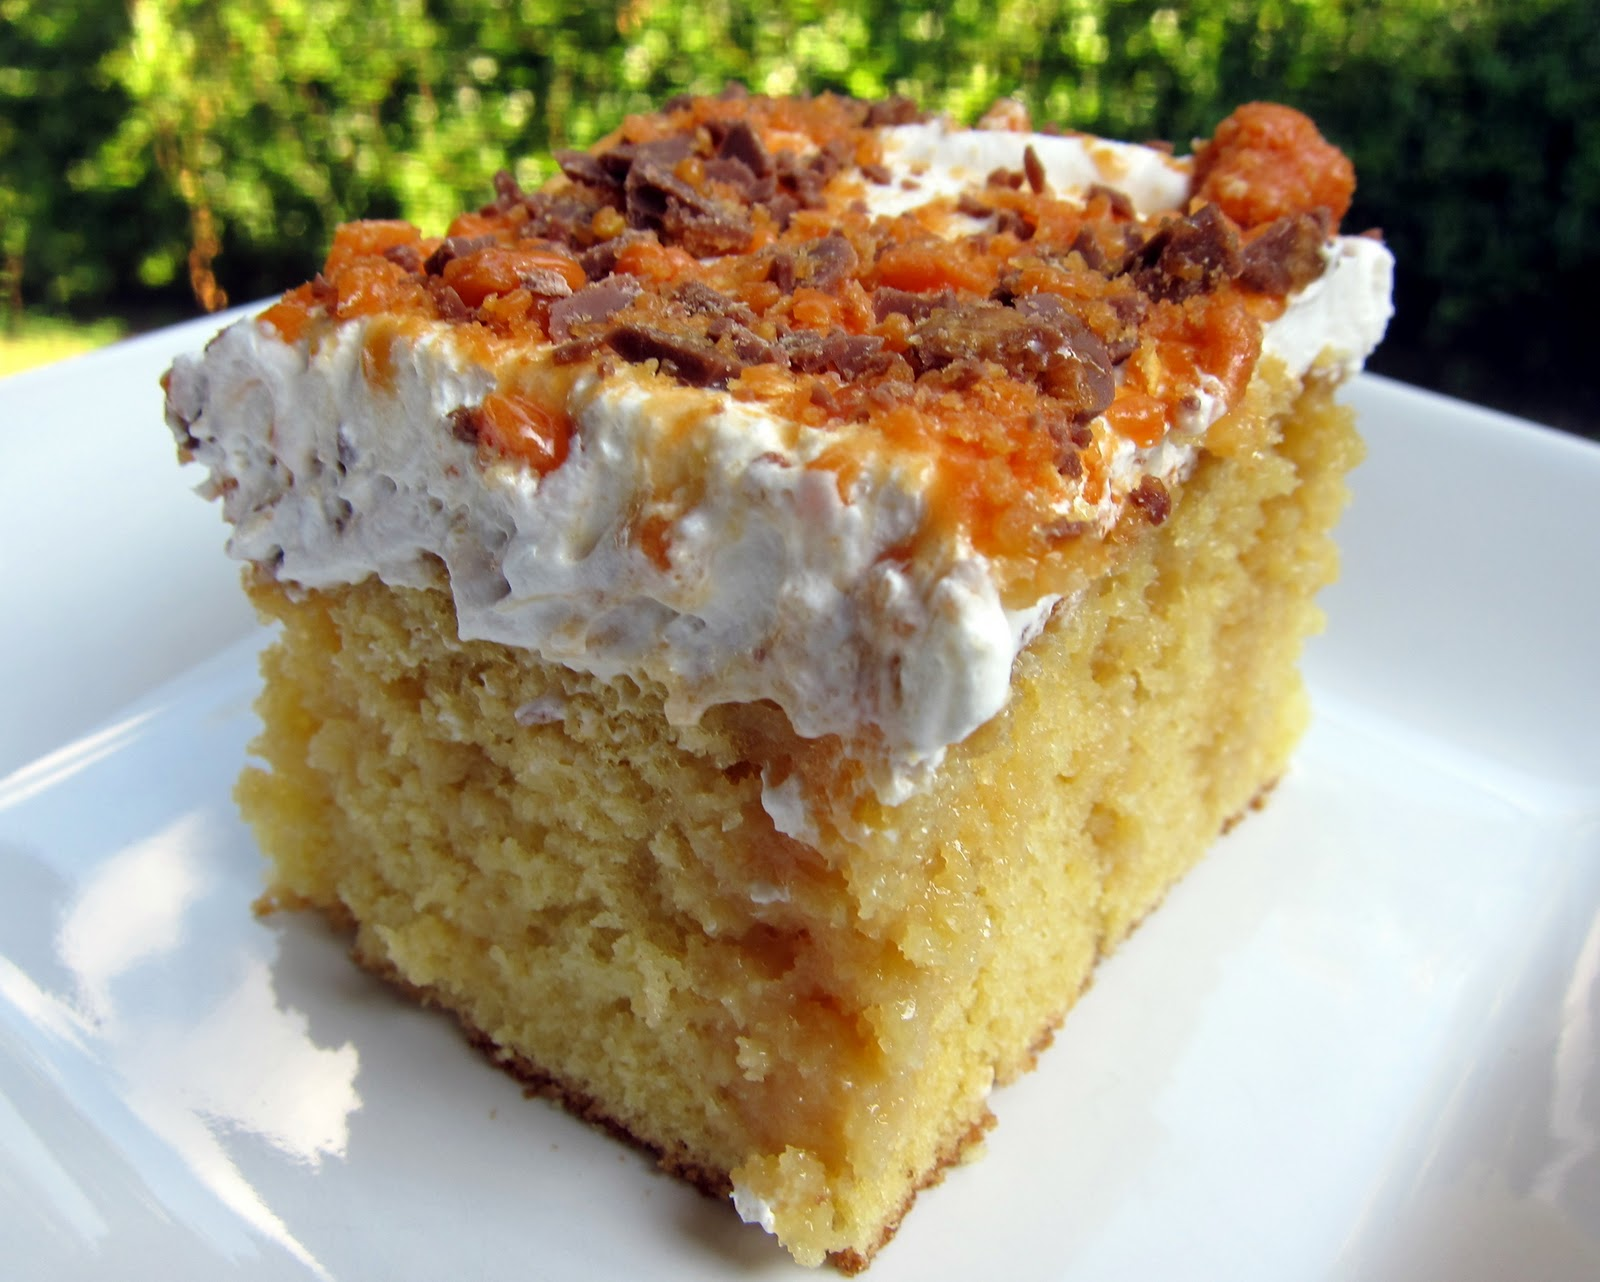 What Cake Mix For Butterfinger Cake